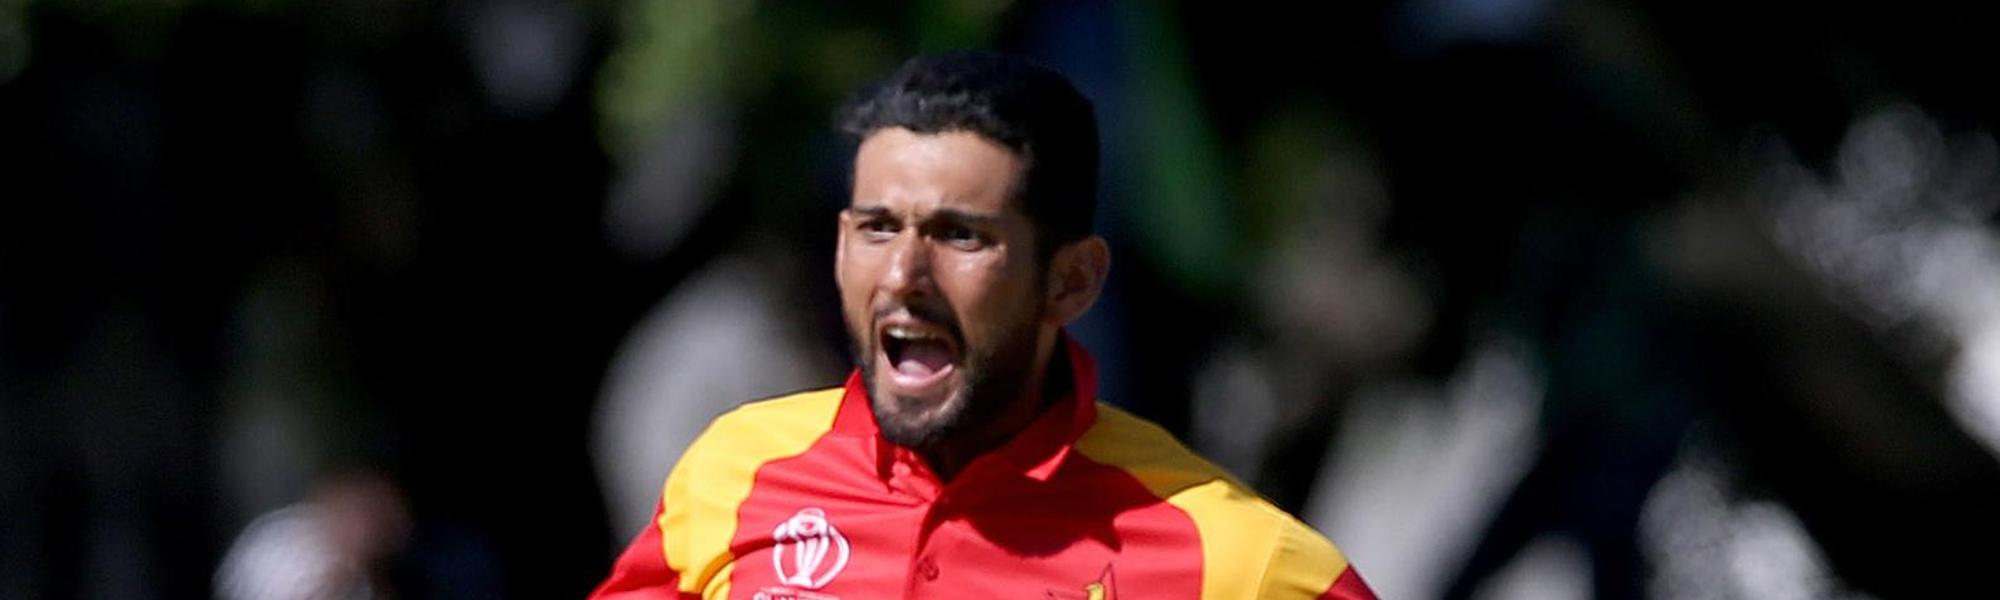 Sikandar Raza picked up key wickets to return 3/41